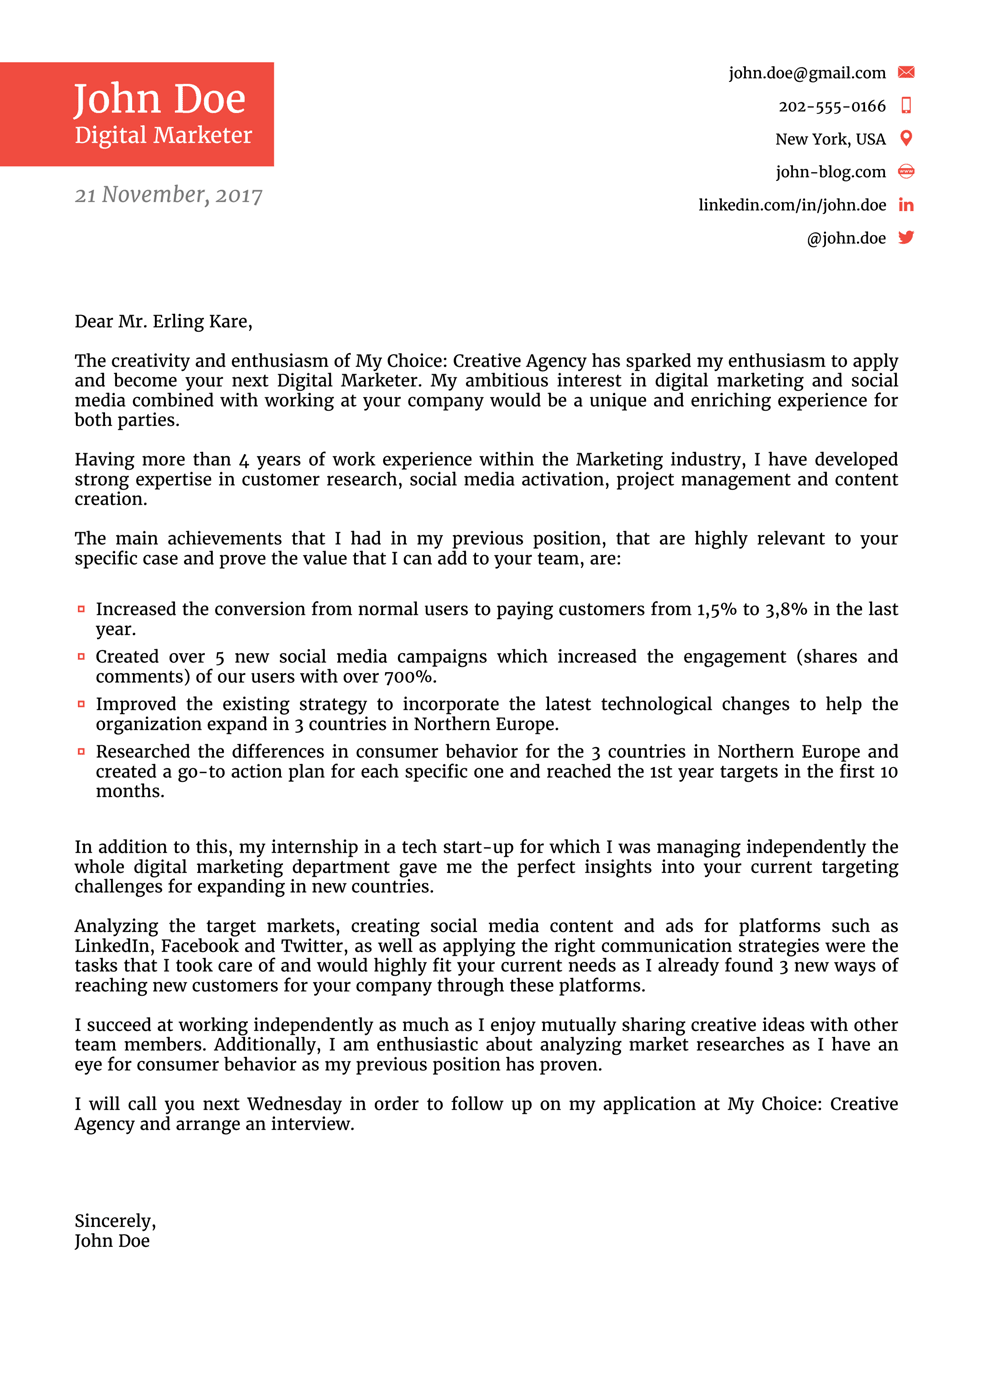 Cover Letter For Job Ngo, Functional Cover Letter Template, Cover Letter For Job Ngo